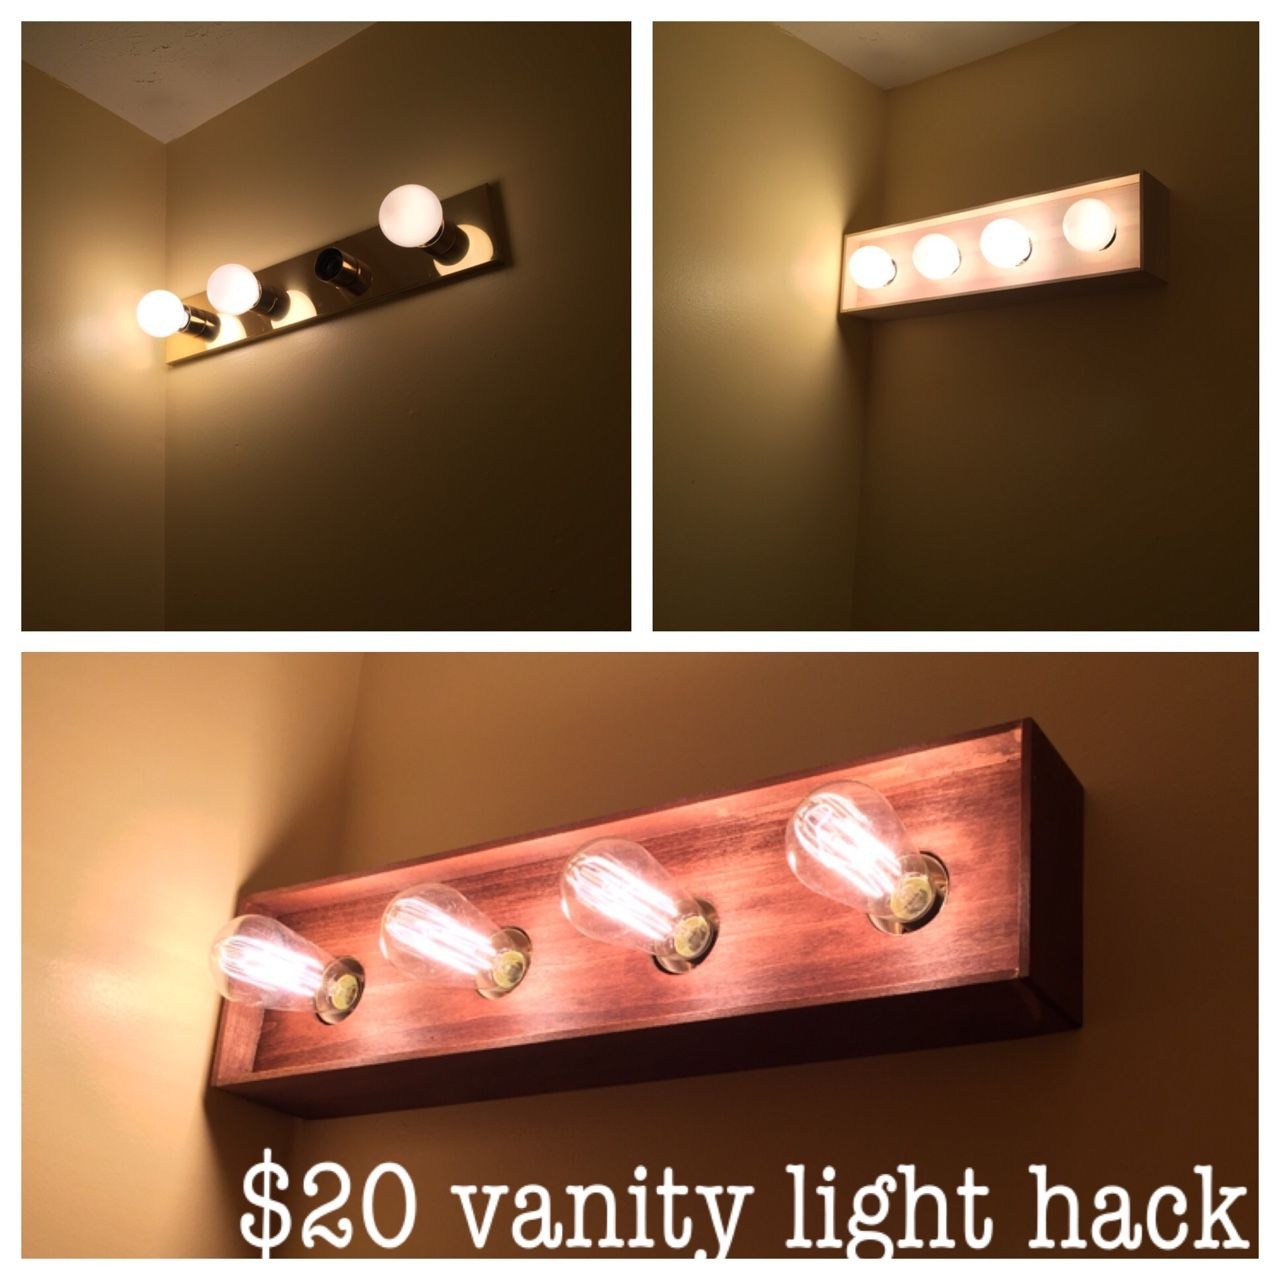 Bathroom Vanity Light Diy Makeover I Built A Thin Wood Box To Cover The Ugly